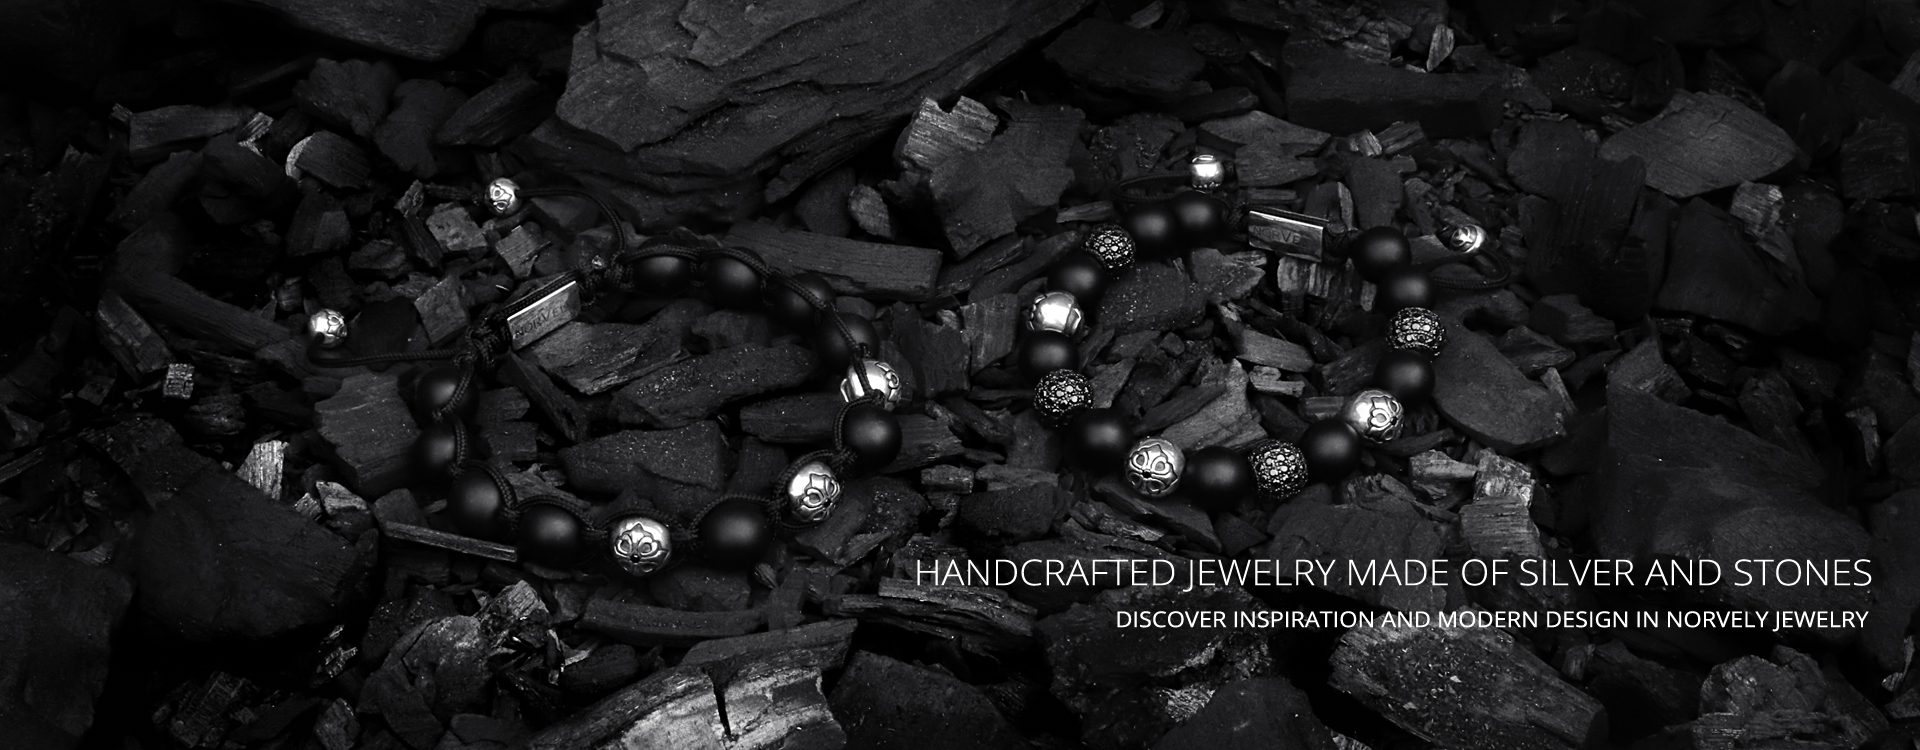 Handcrafted jewelry made of silver and stones